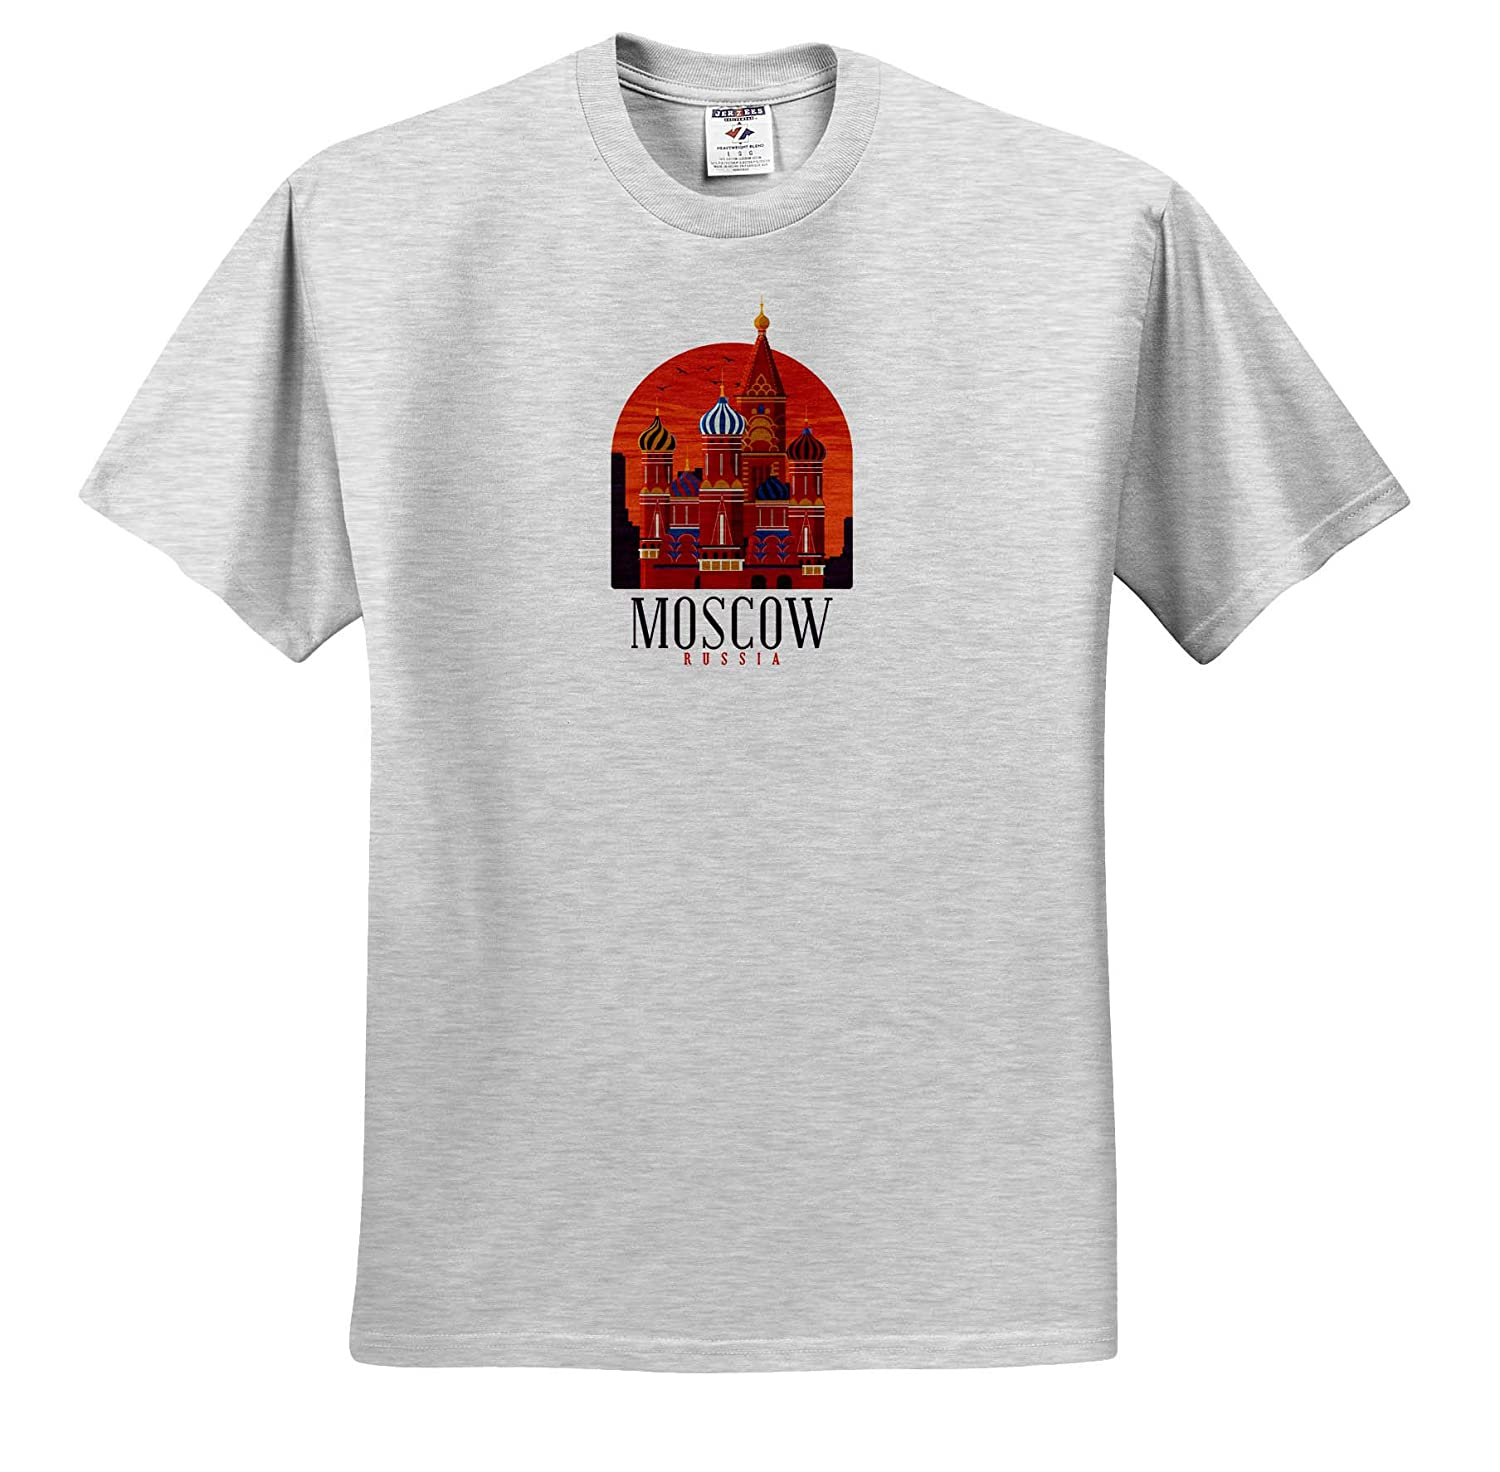 Moscow Russia with Vintage and Retro Colors Adult T-Shirt XL 3dRose Sven Herkenrath City ts/_311001